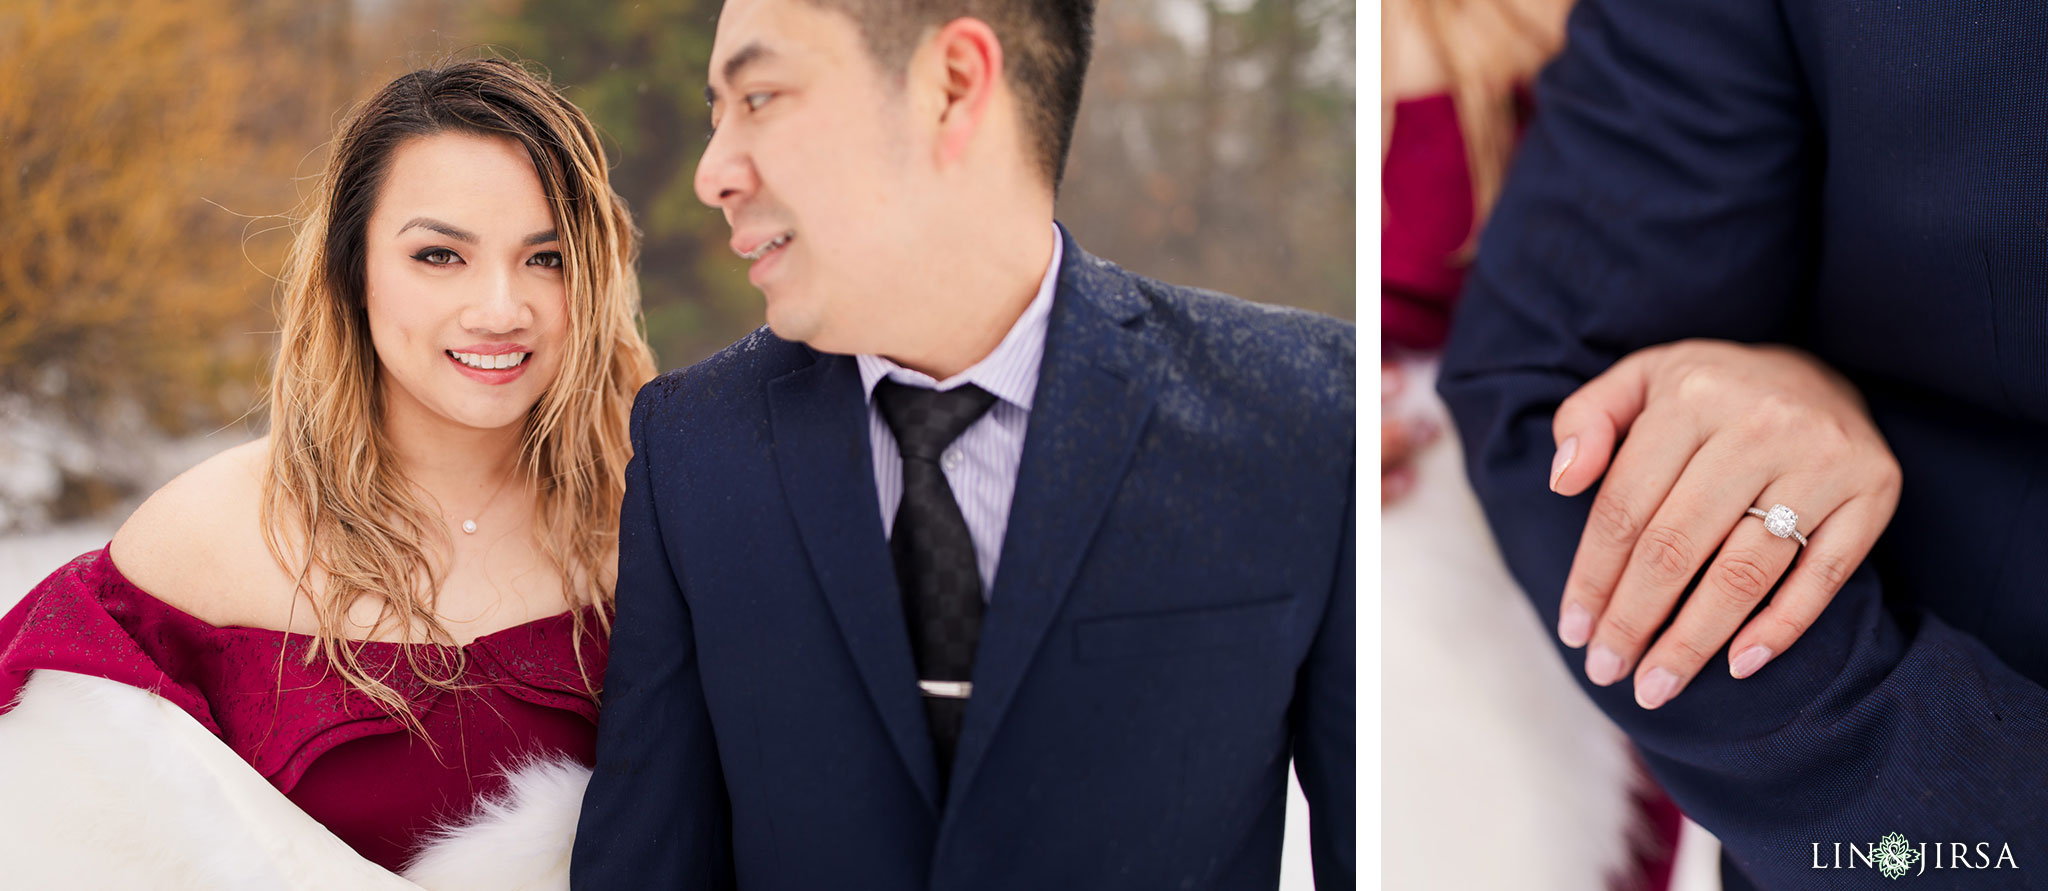 10 Green Valley Lake Snowy Engagement Photography